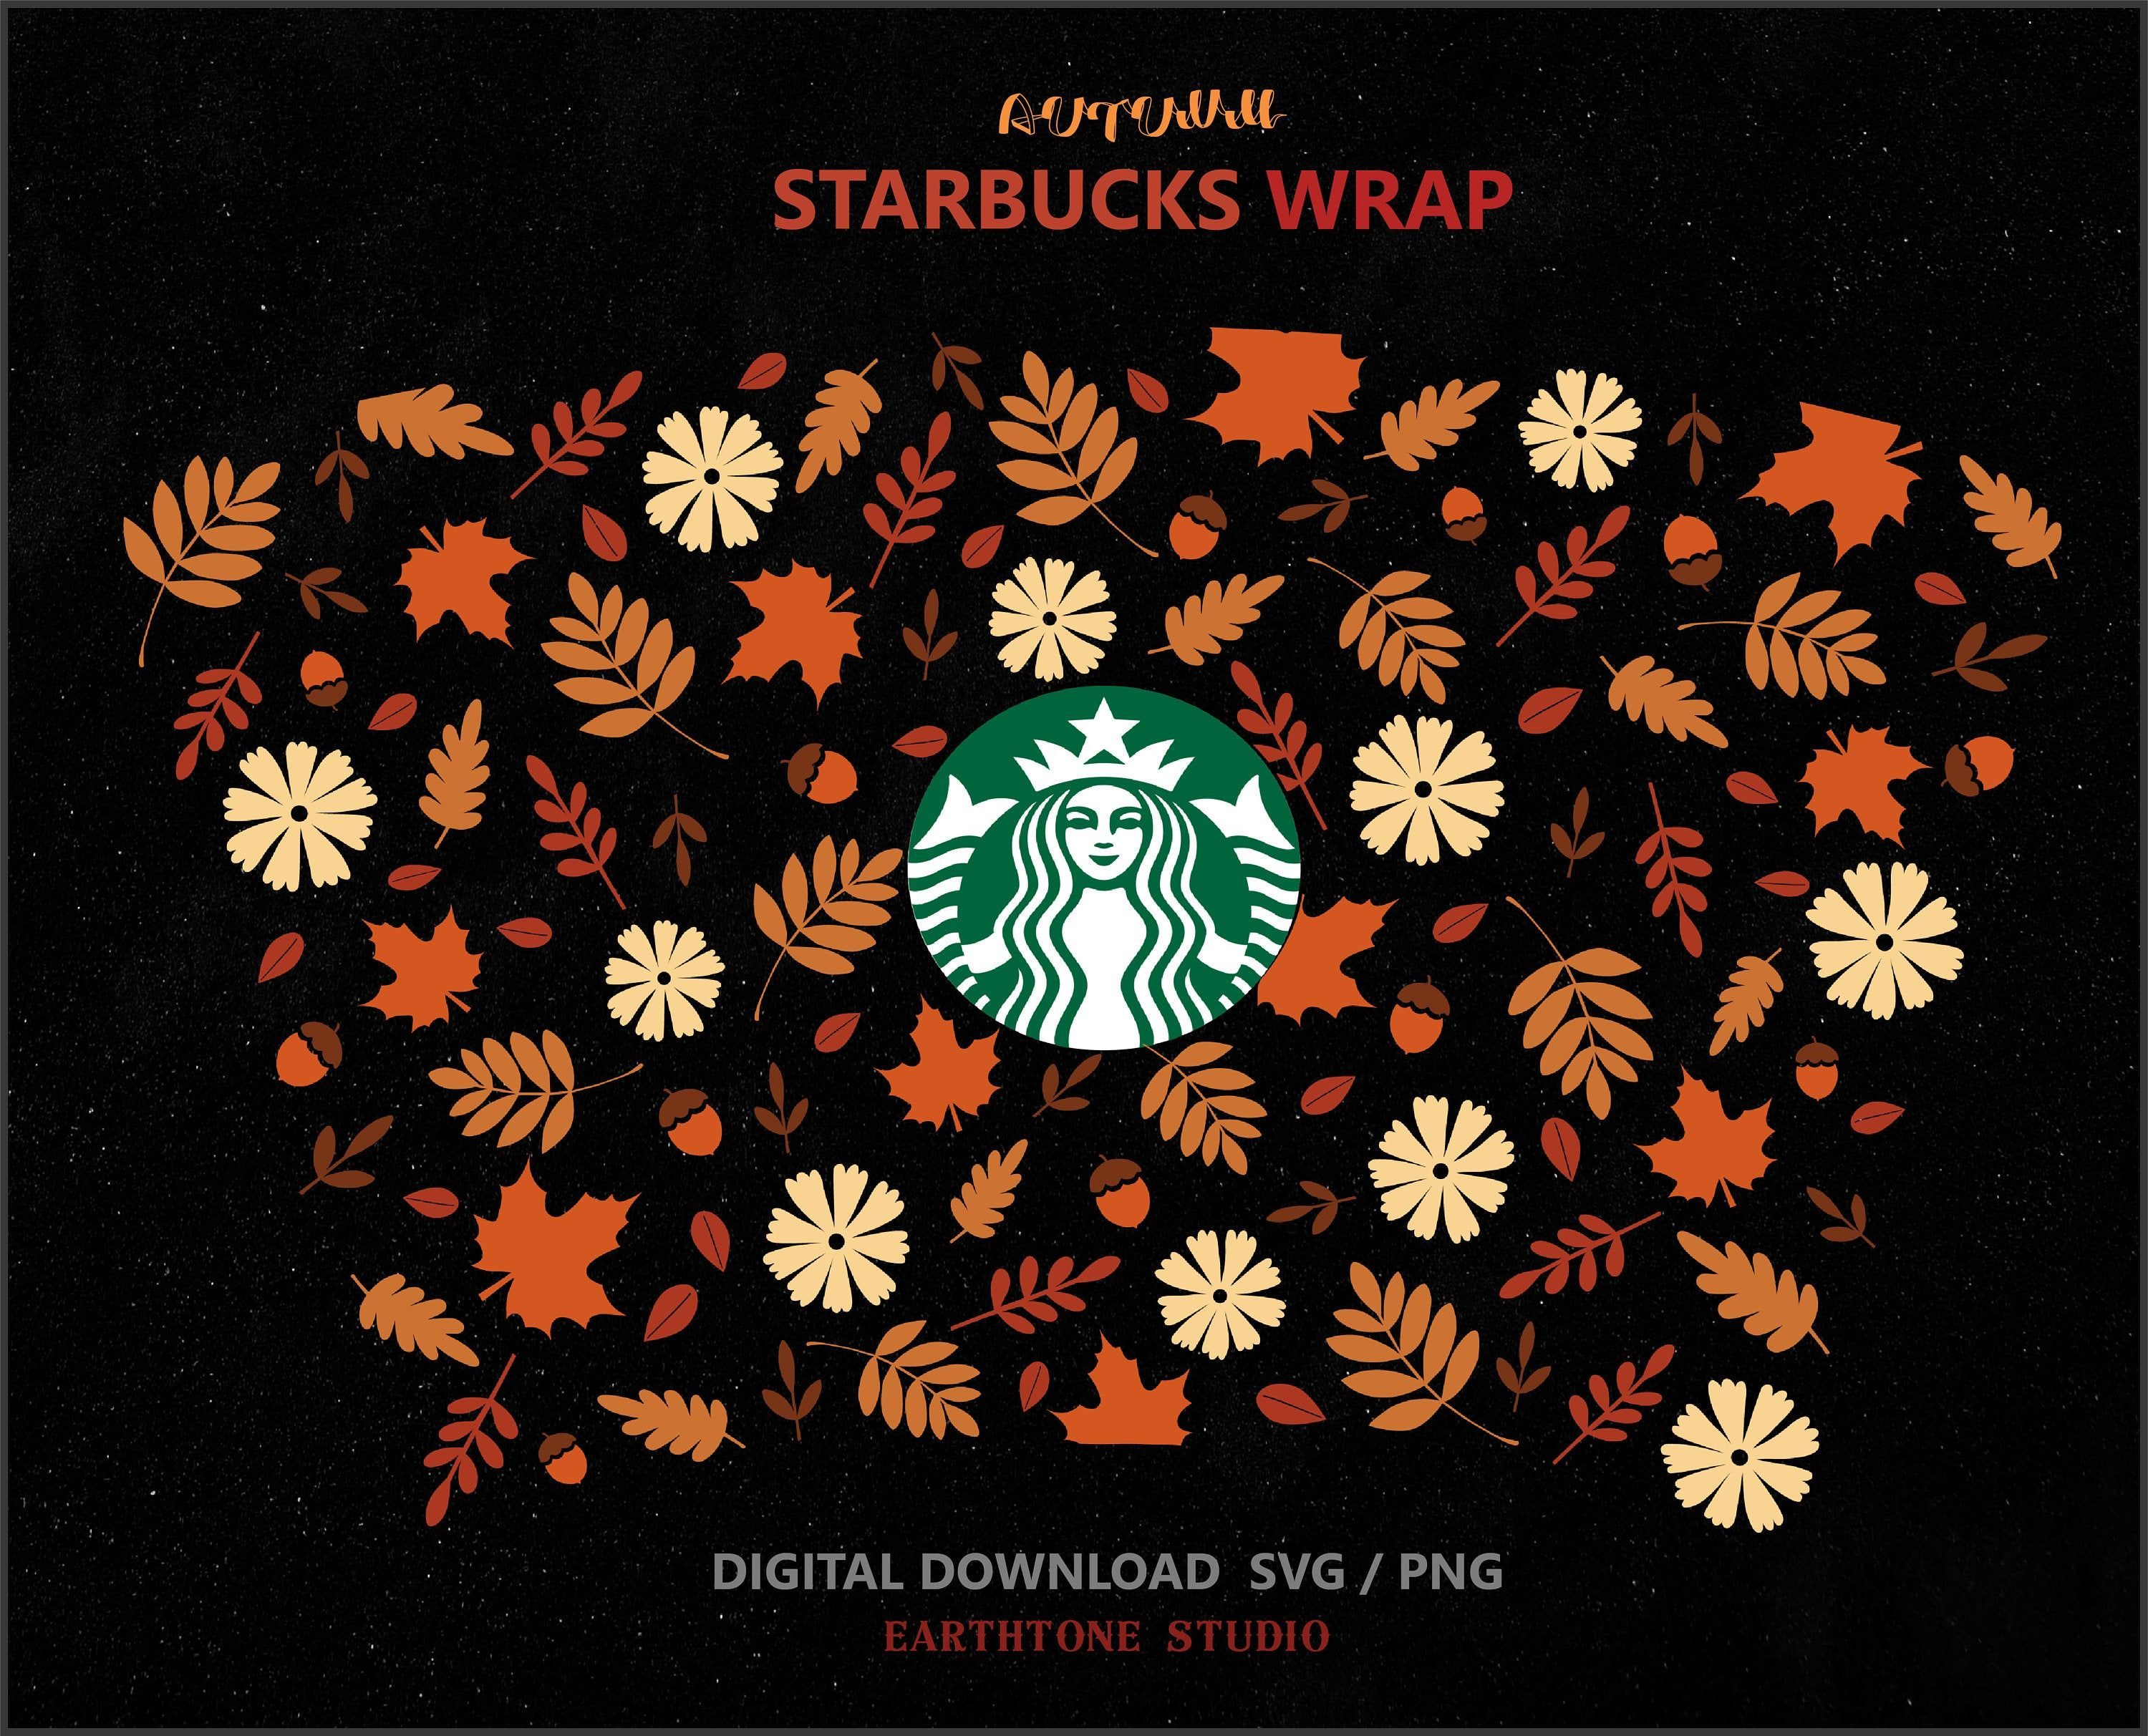 Fall Seamless Full Wrap Svg For Starbucks Venti Cold Cup 24 Oz Etsy In 2020 Starbucks Halloween Starbucks Fall Starbucks Venti